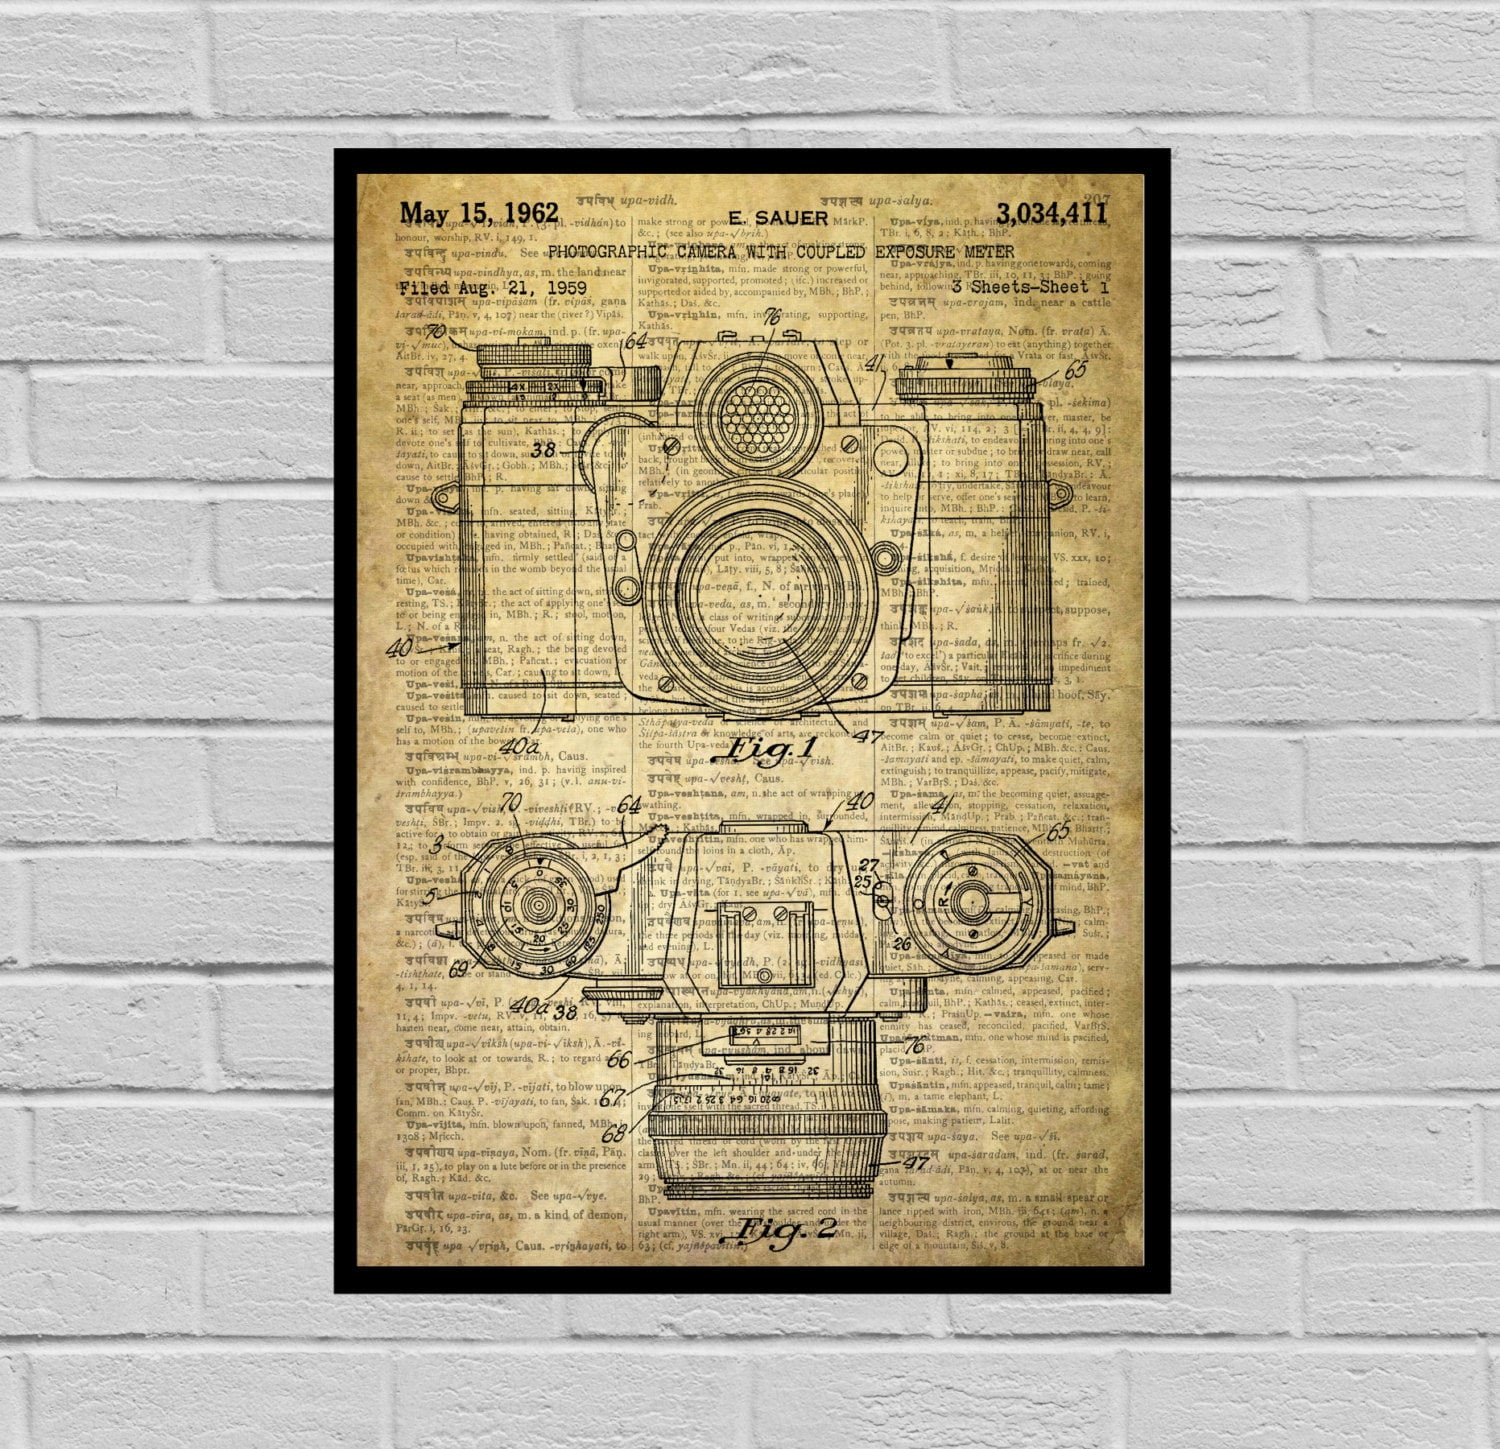 Camera poster vintage camera patent vintage camera print vintage camera poster vintage camera patent vintage camera print vintage camera vintage camera decor vintage camera blueprint camera malvernweather Gallery